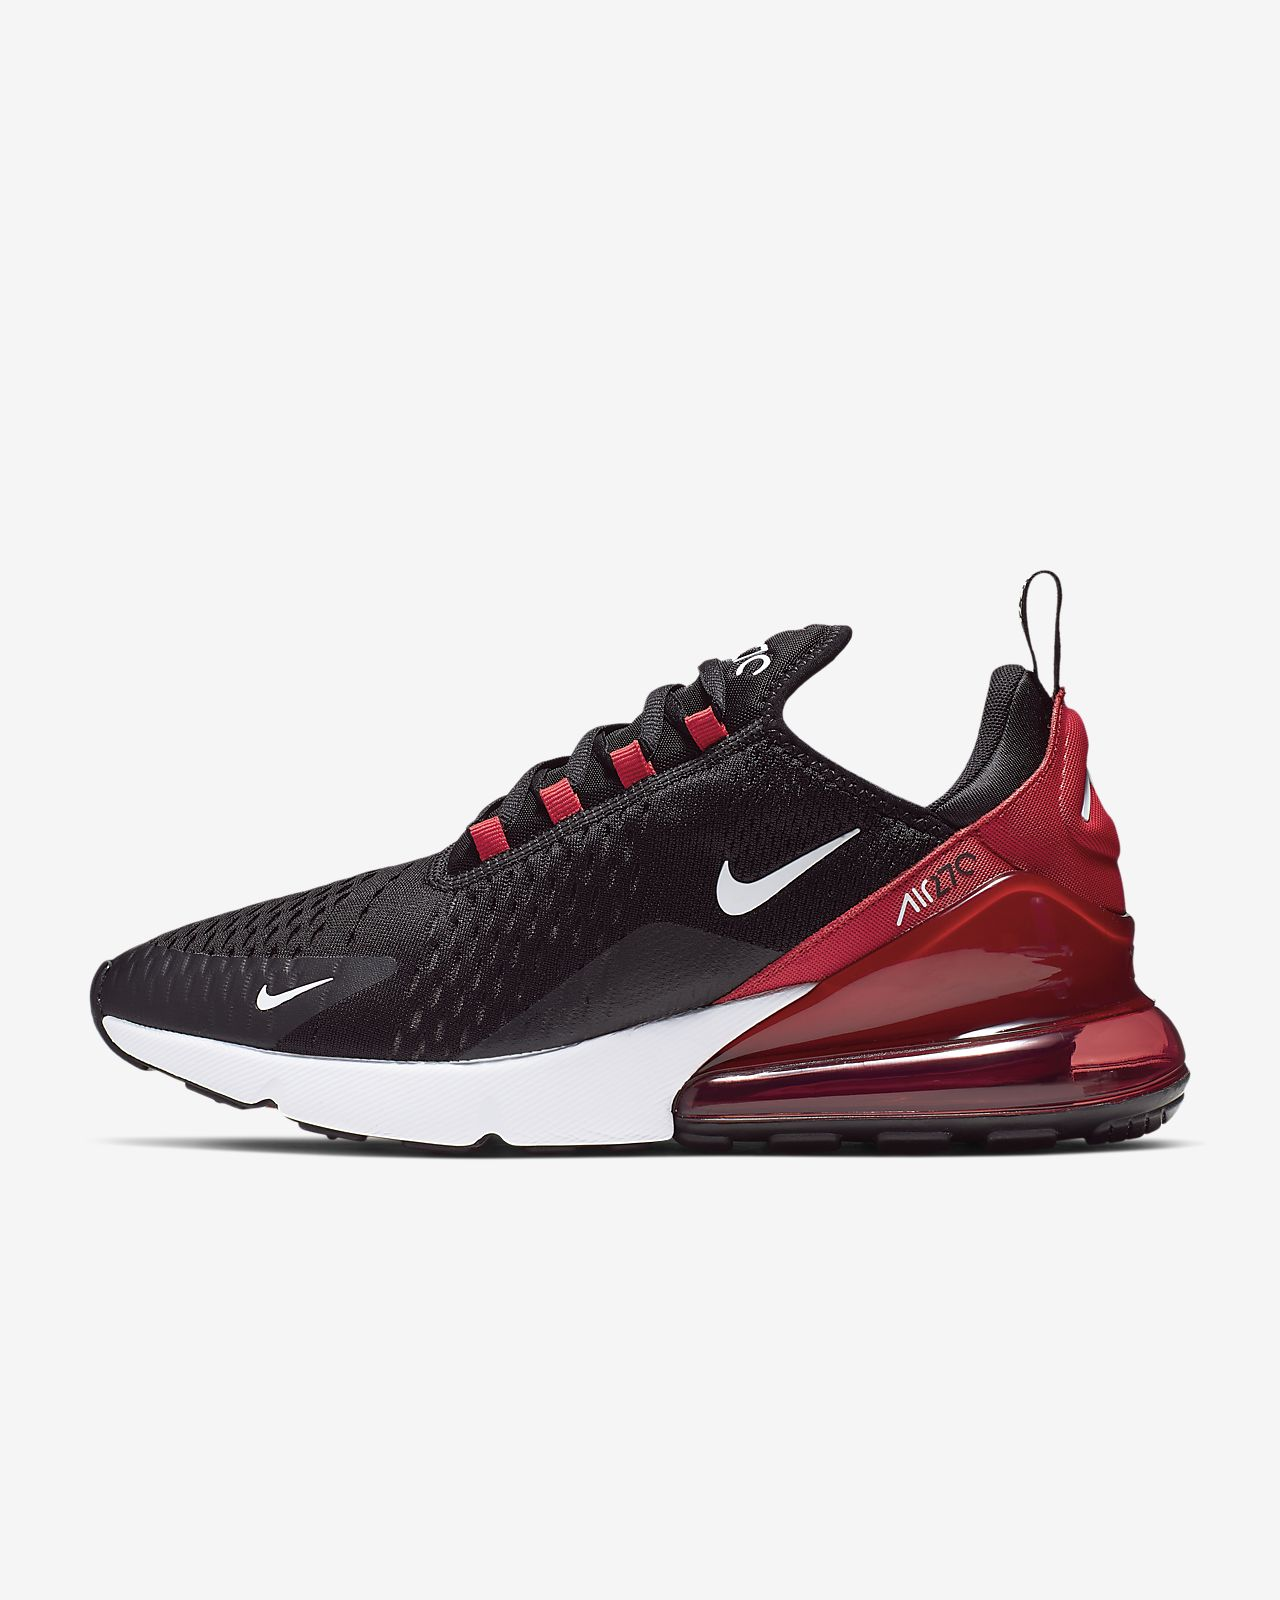 huge selection of 460f1 24a7a ... Sko Nike Air Max 270 för män